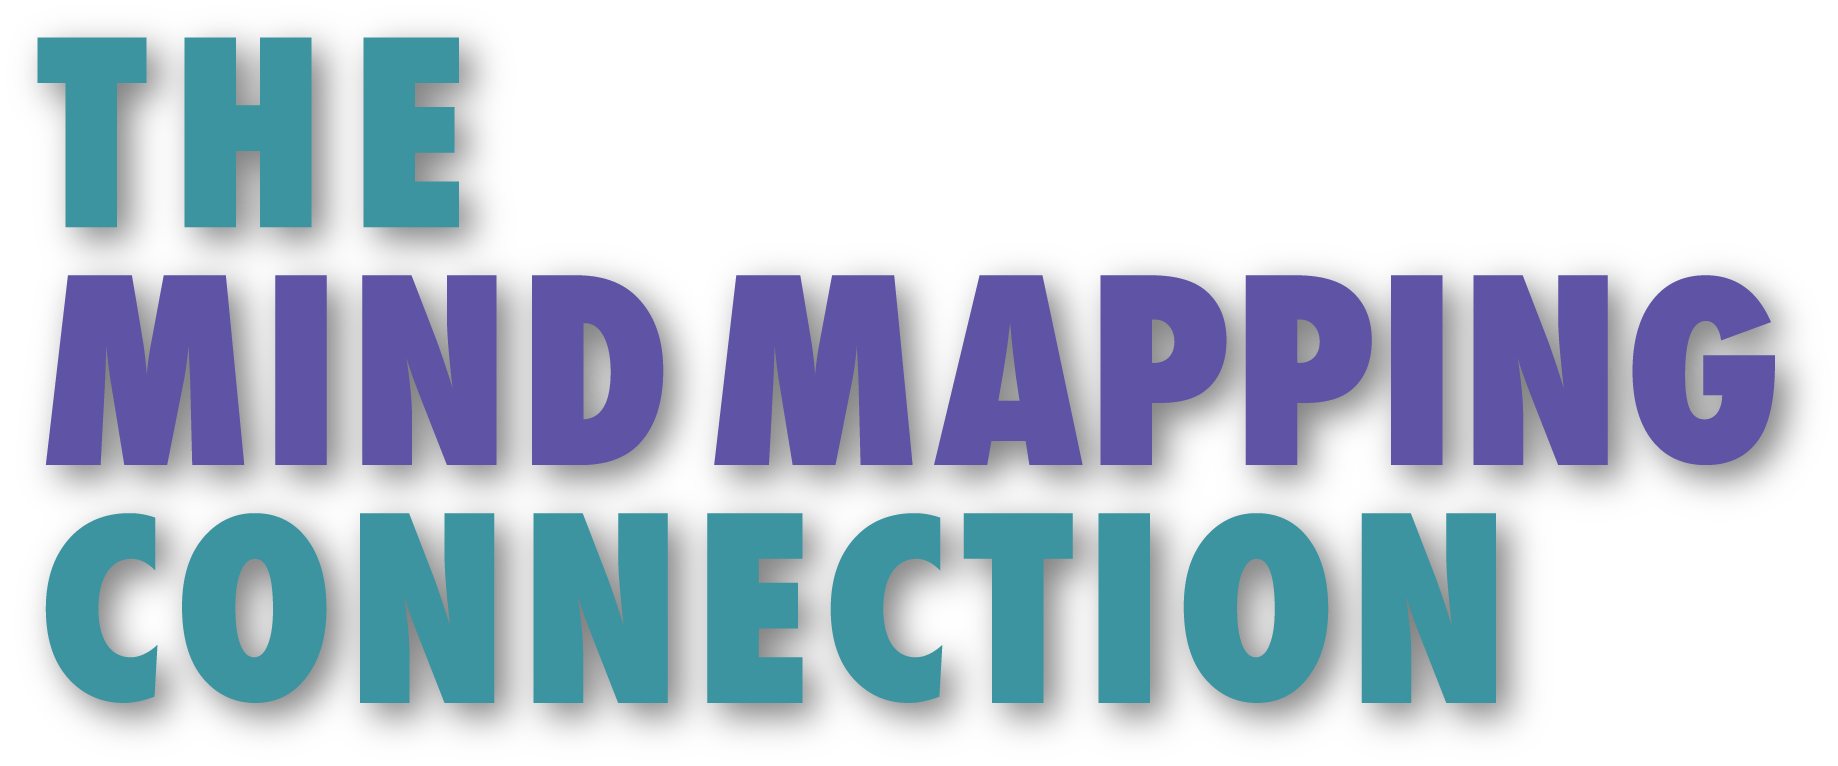 The Mind Mapping Connection logo